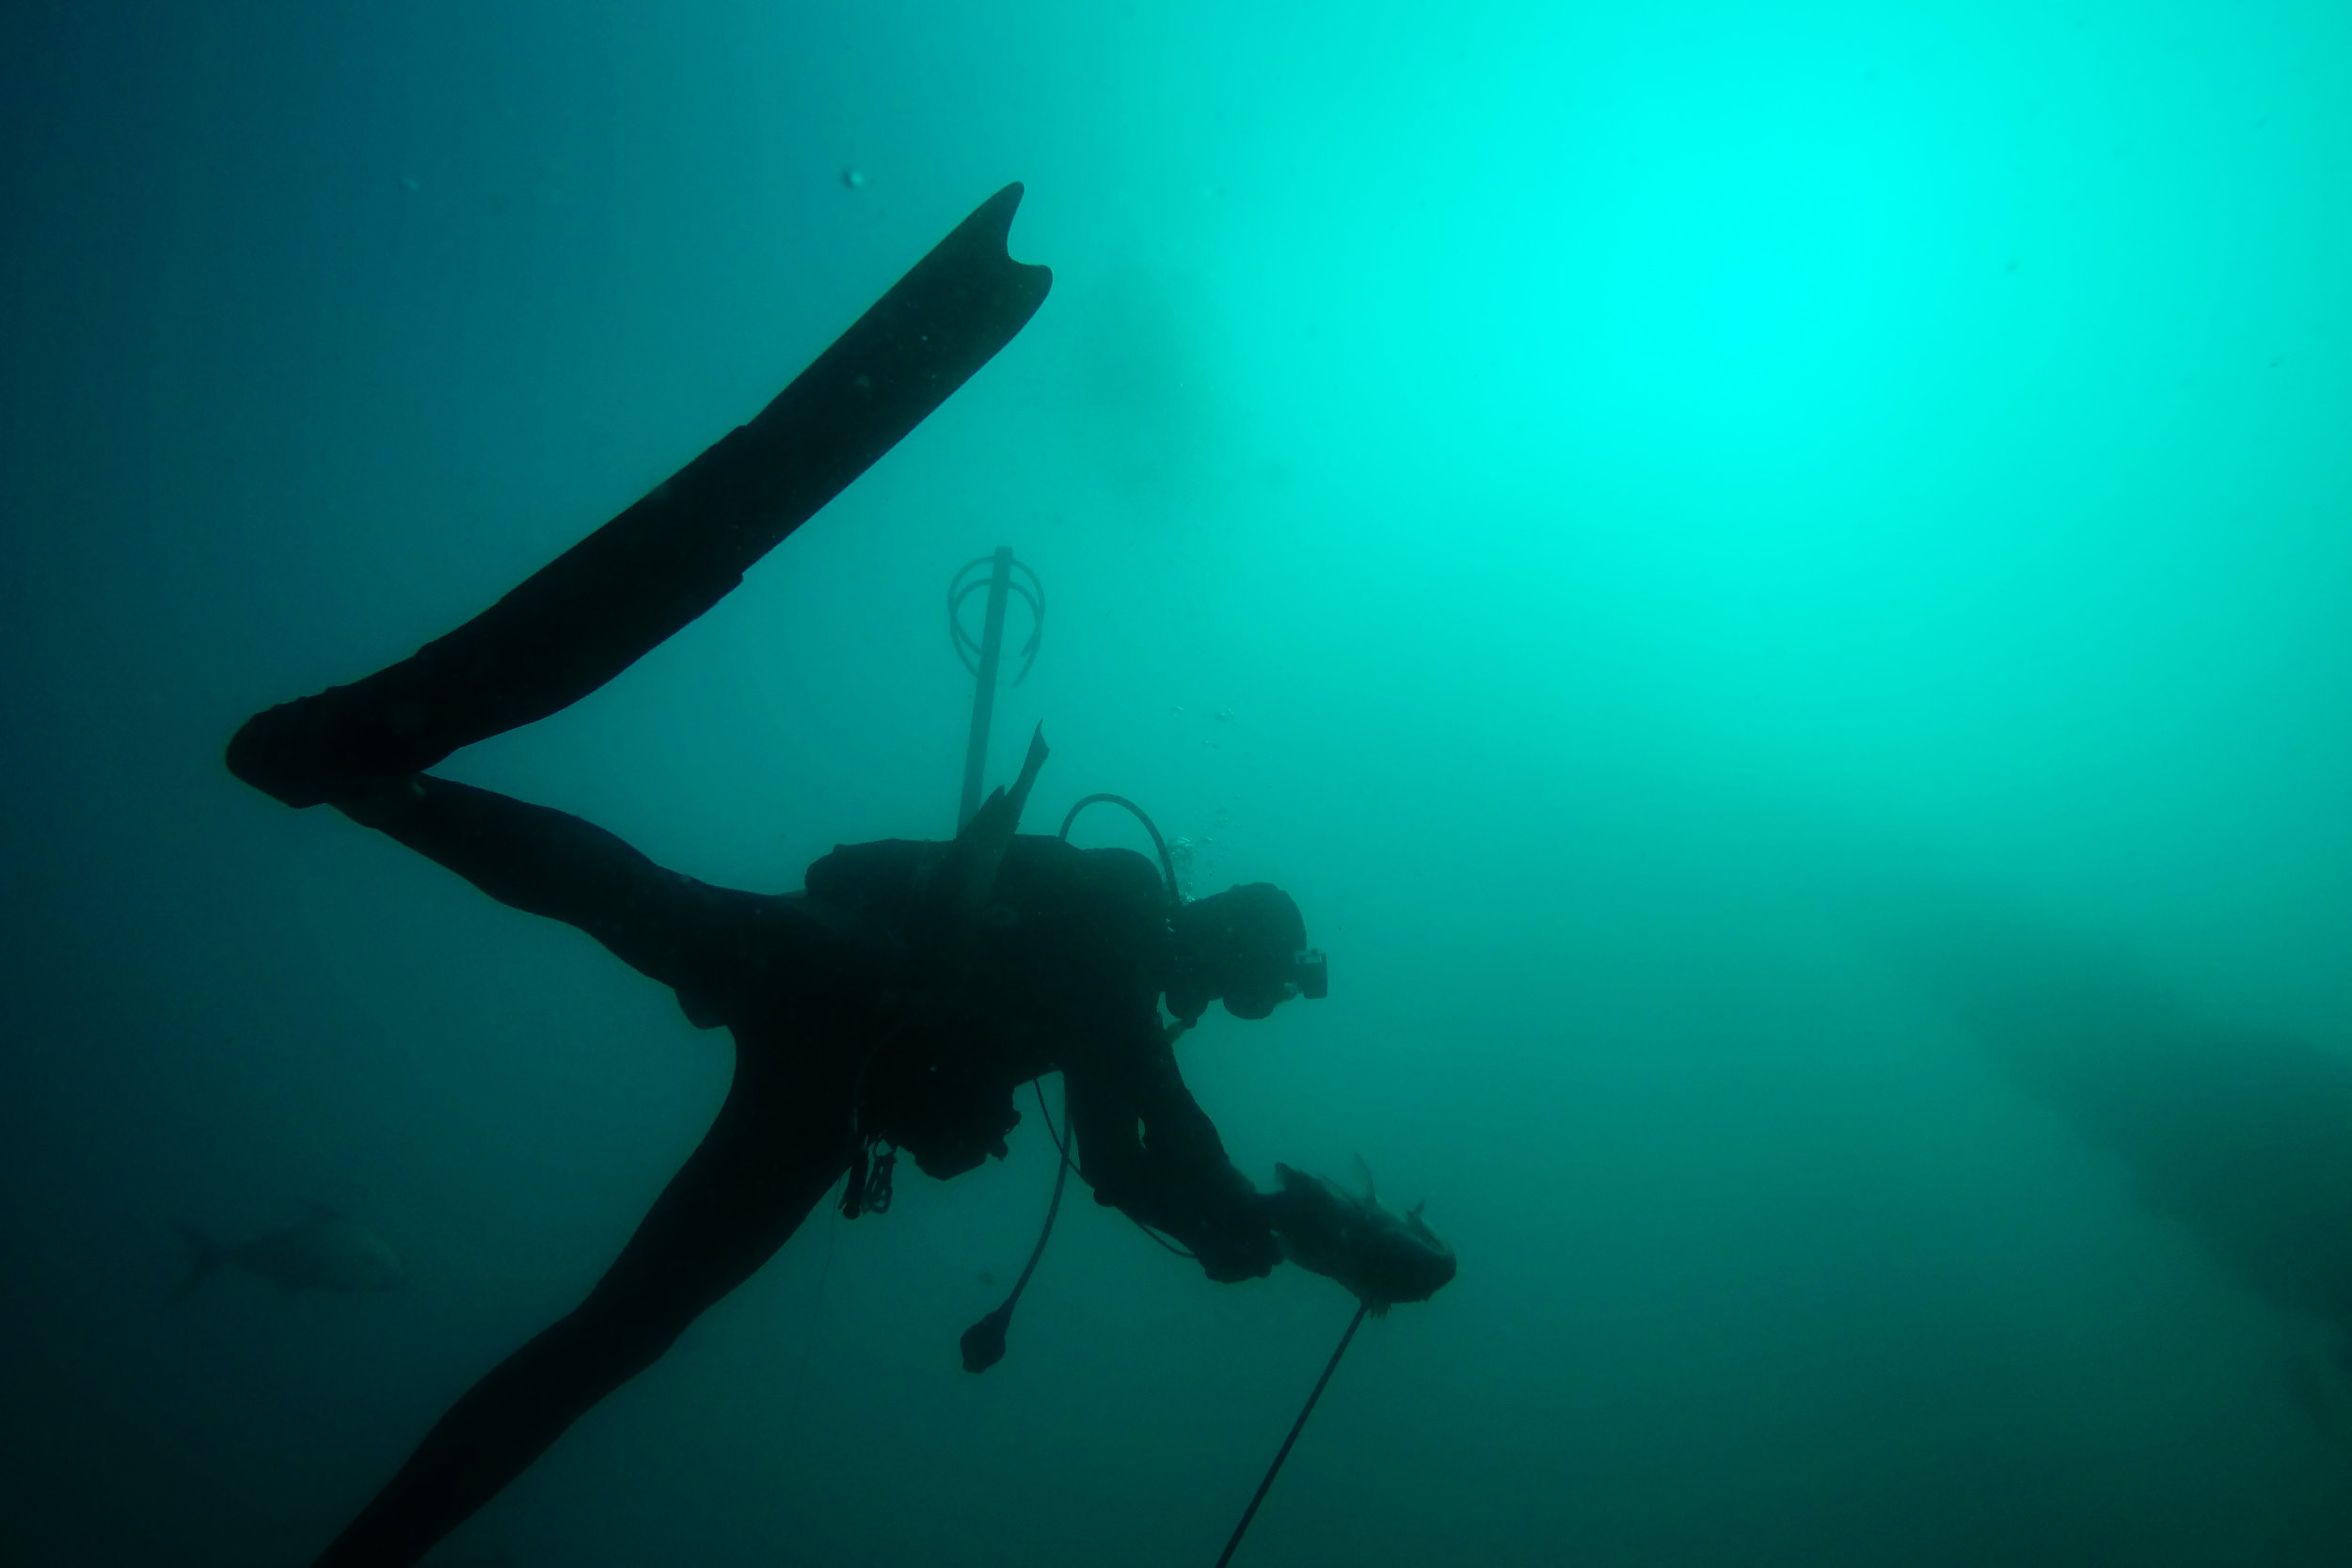 """Collier County Waterkeeper Bill D'Antuono spears a Snapper while diving below one of the support beams for Air Force Radio Tower """"R"""" (seen at right) Wednesday, Feb. 8, 2017 about 30 miles off the coast of Naples, Fla. The fate of the tower is in question as the Air Force decides to sink it, creating an artificial reef, leave it untouched, or remove it entirely. The old decommissioned Air Force radio tower is known as a local Naples hotspot for fishing and diving."""